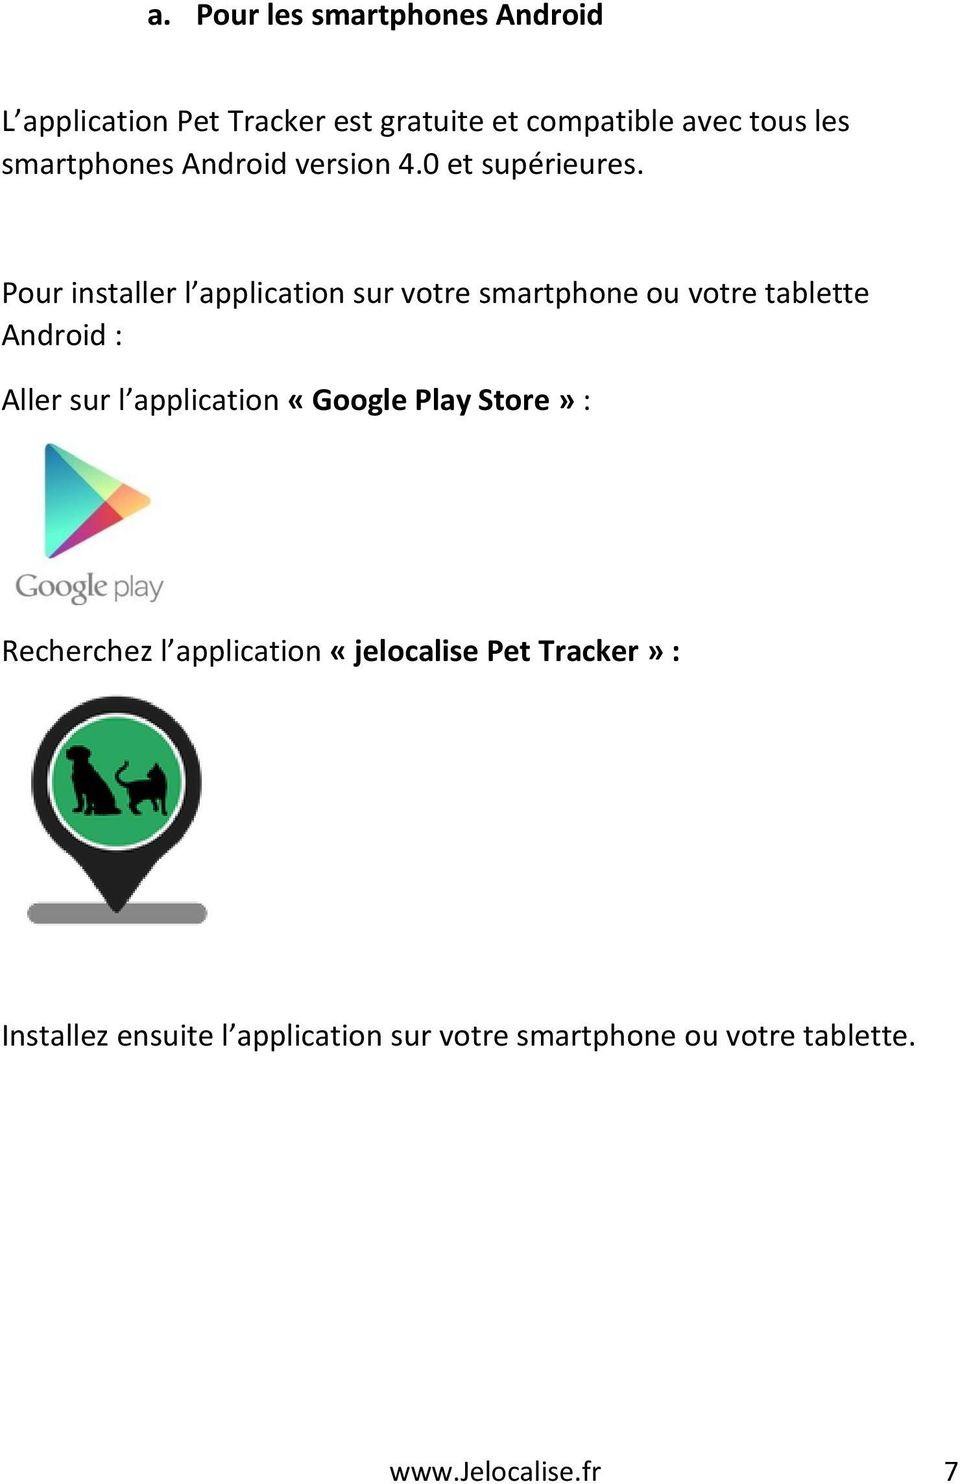 Pour installer l application sur votre smartphone ou votre tablette Android : Aller sur l application